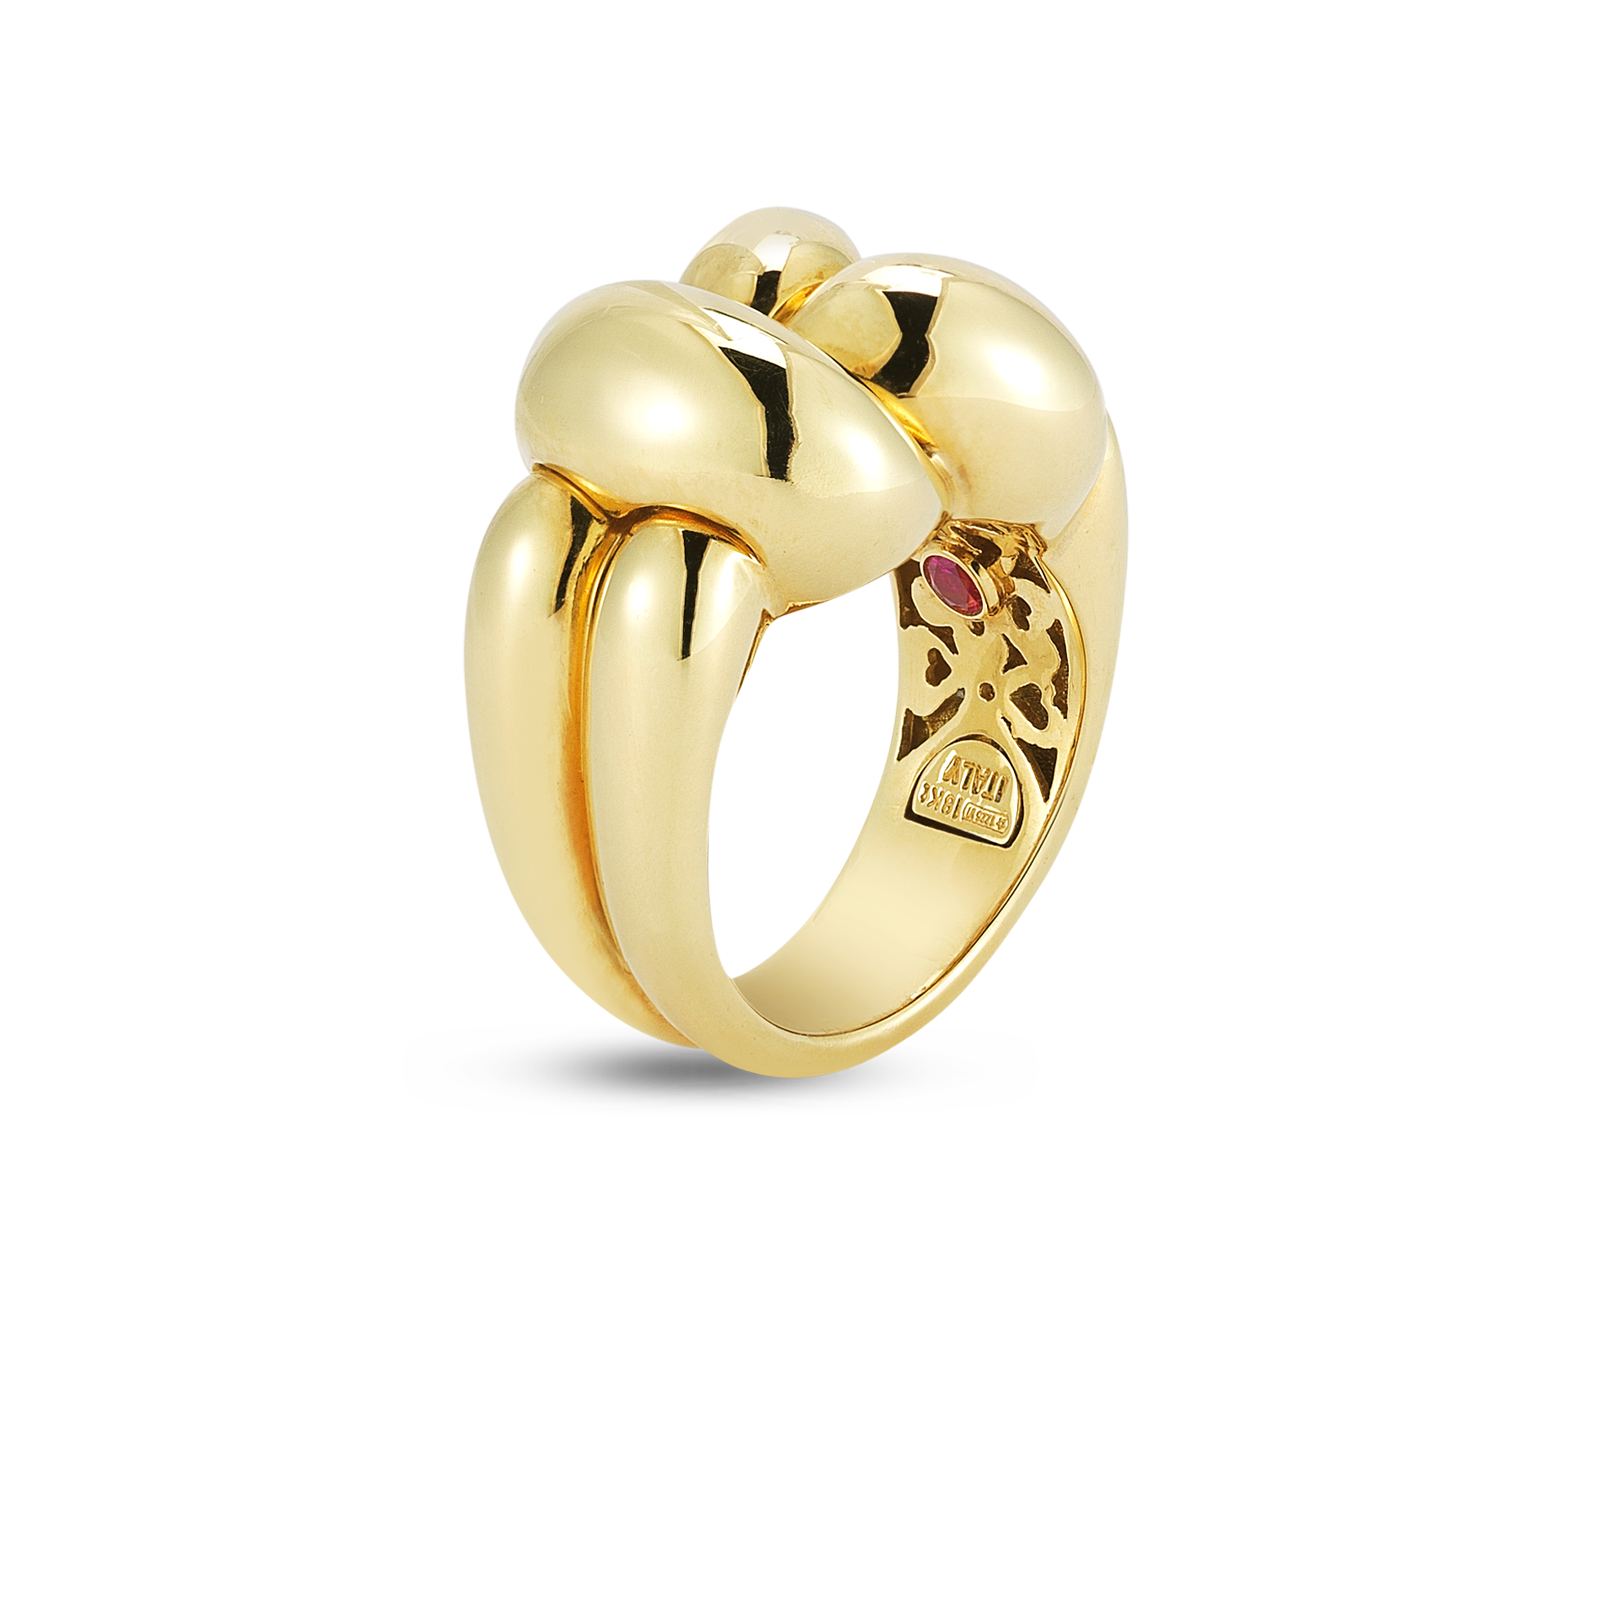 Roberto-Coin-Designer-Gold-18K-Yellow-Gold-Knot-Ring-228454AY7000_B